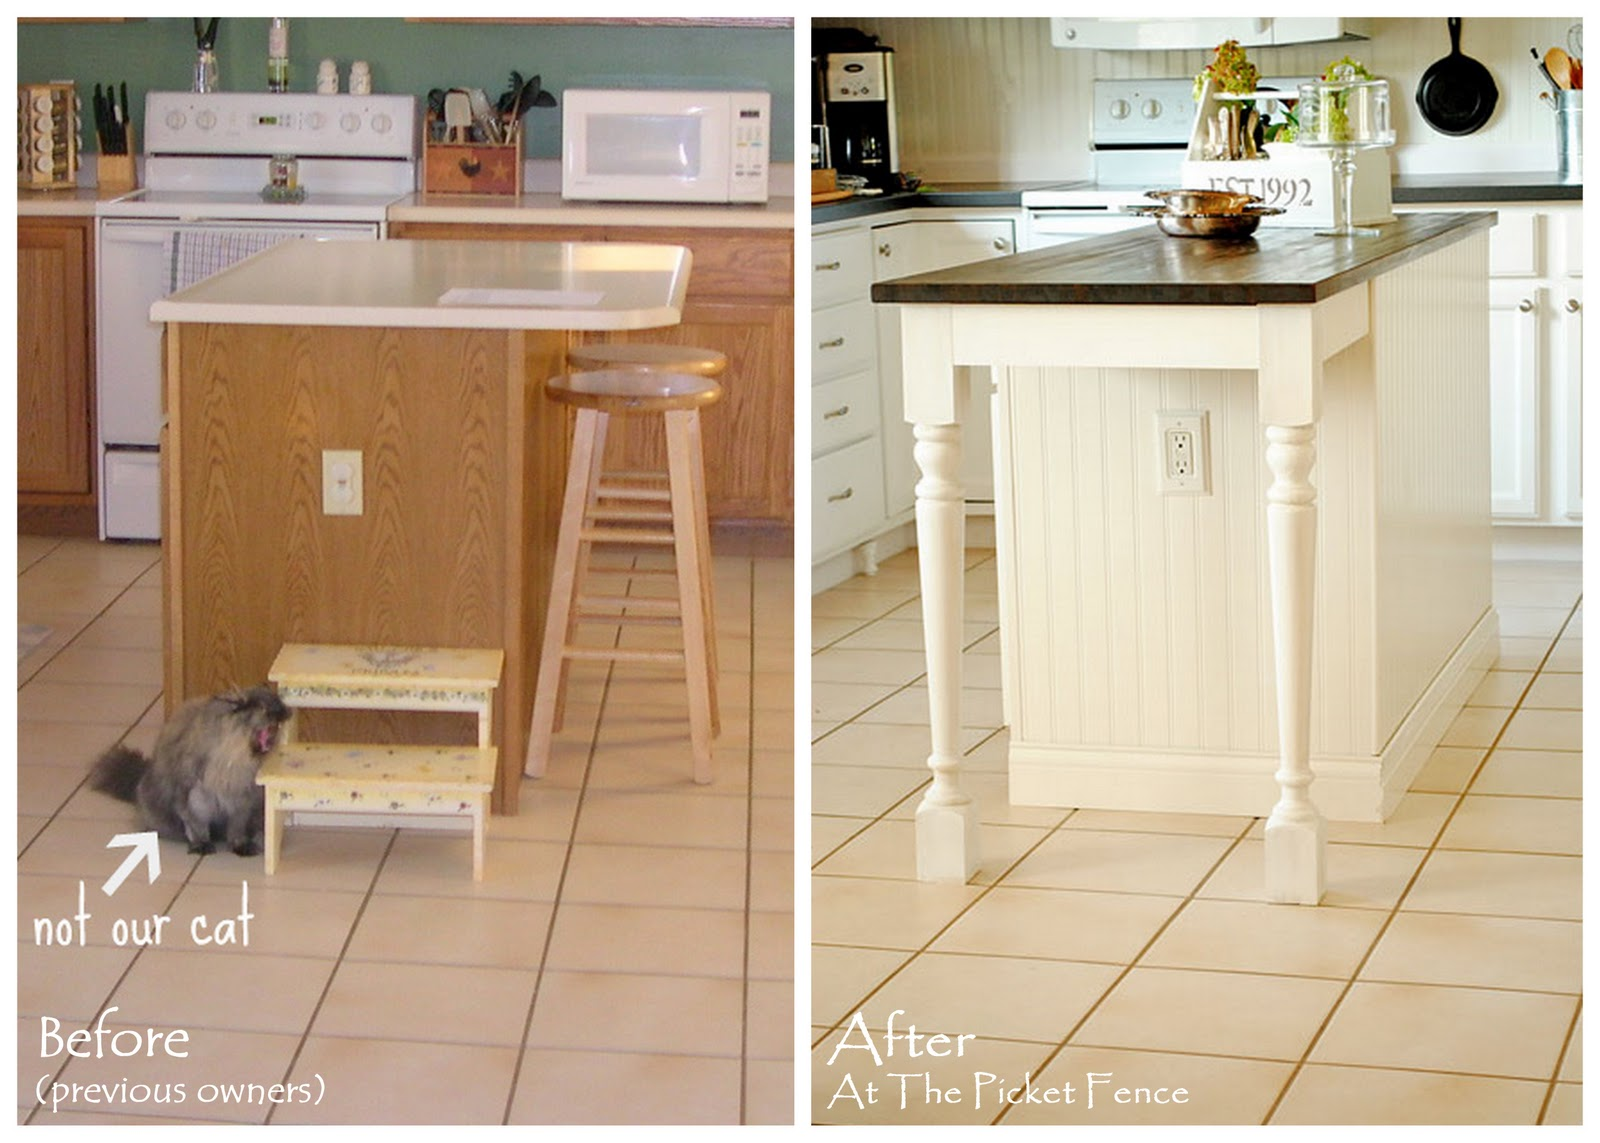 Ikea Island Cover Panel Installation ~ My kitchen island transformation  Part One  At The Picket Fence